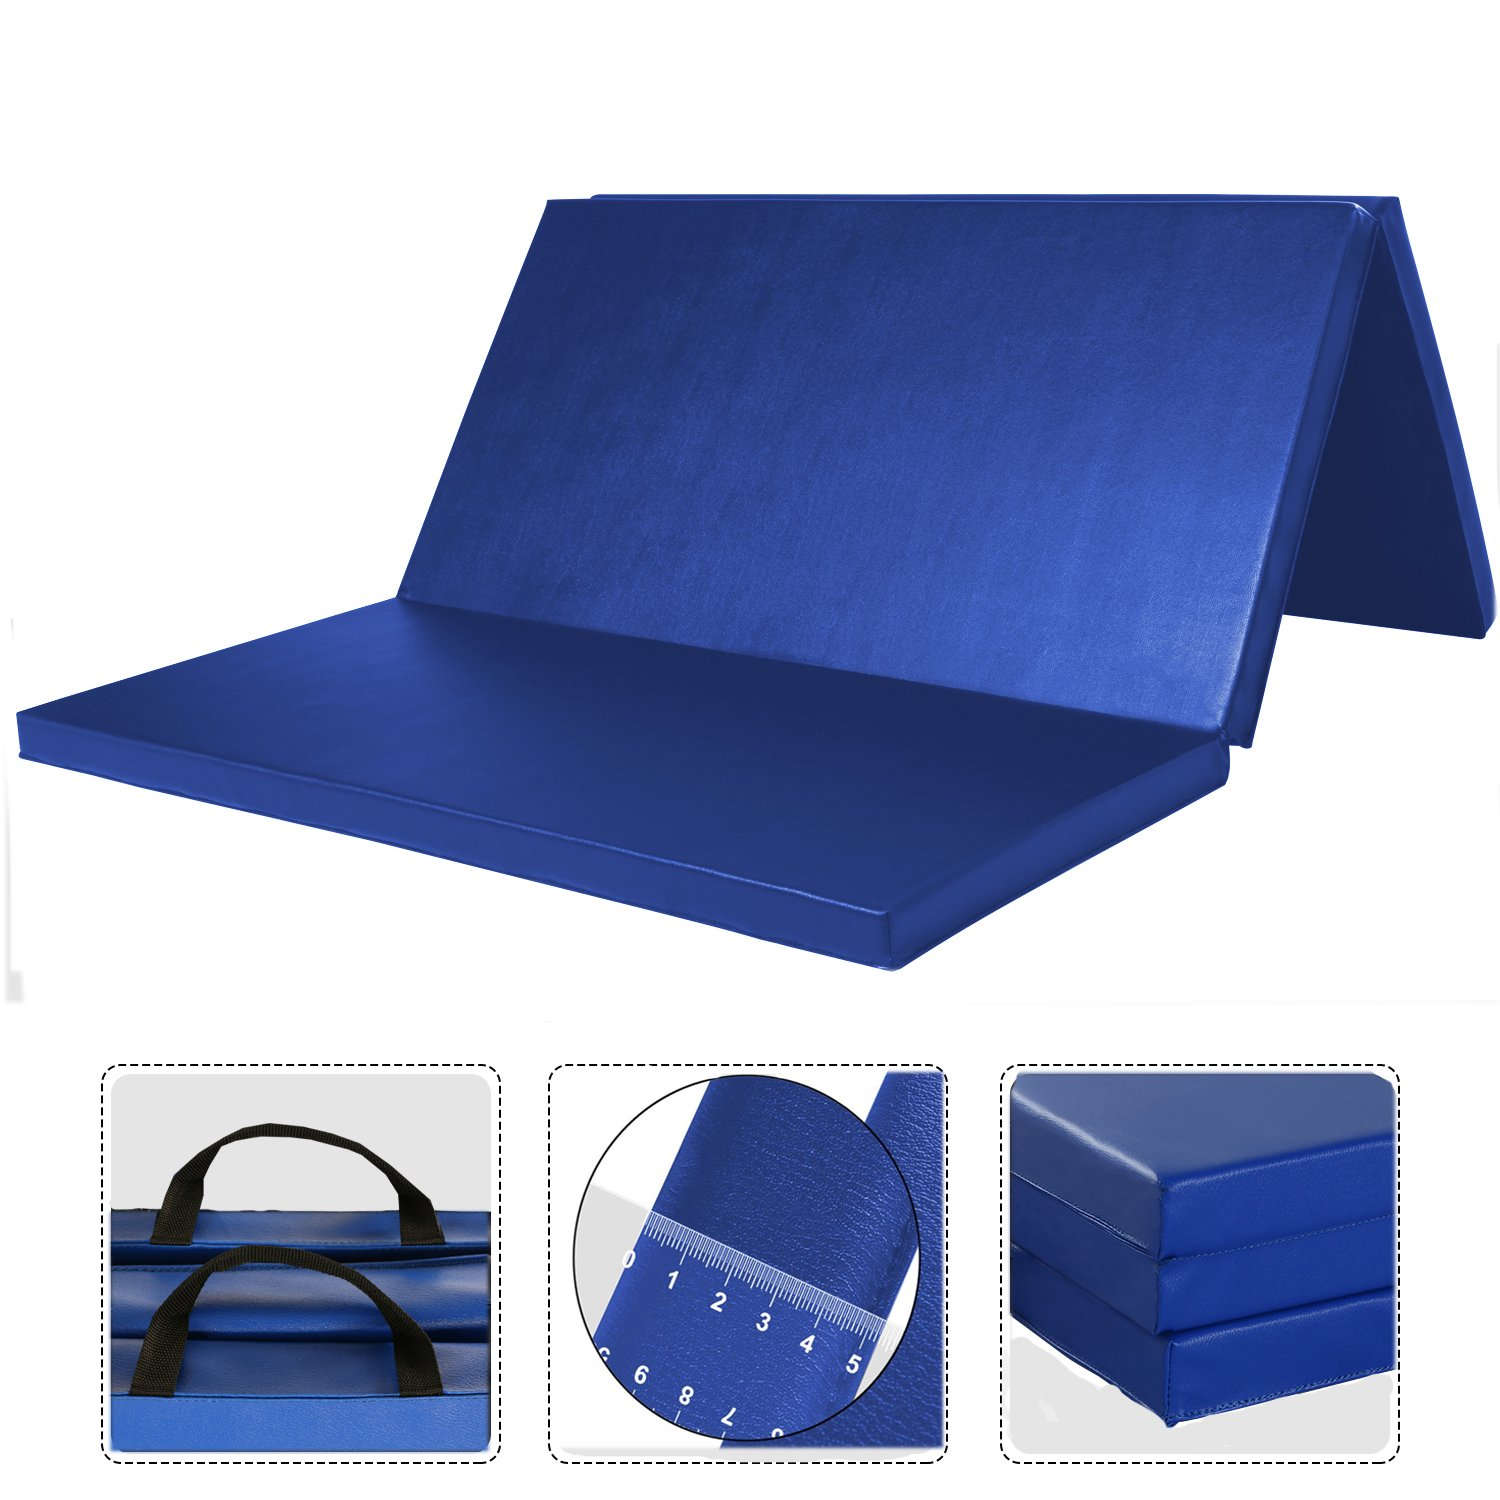 Leapair PU Leather Tri-Fold 2-Inch Thick Exercise  Pad, Blue, 4 x 6 Feet